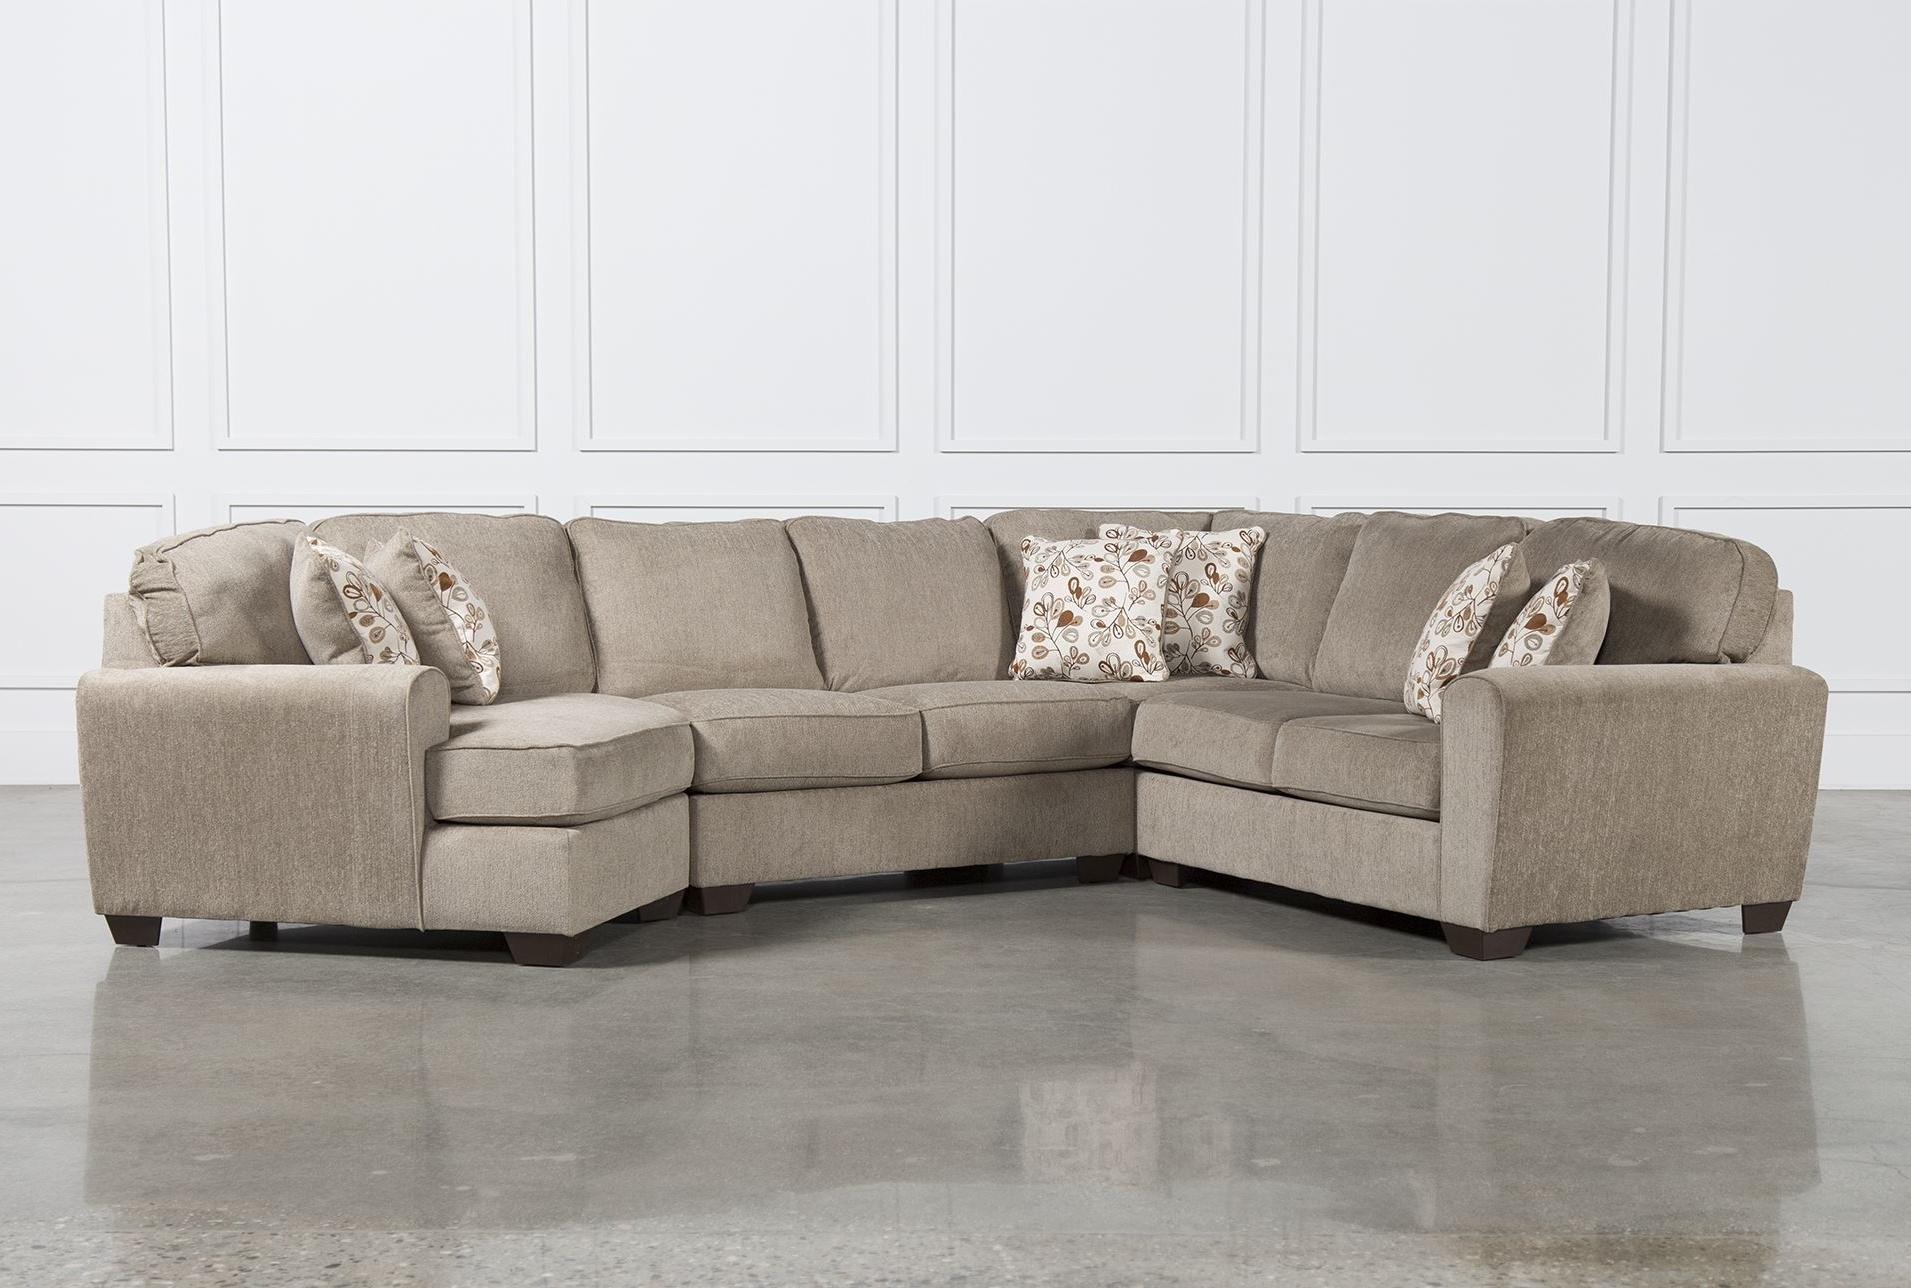 Preferred Patola Park 4 Piece Sectional W Raf Cuddler Living Spaces In Sofa Throughout Living Spaces Sectional Sofas (View 13 of 15)